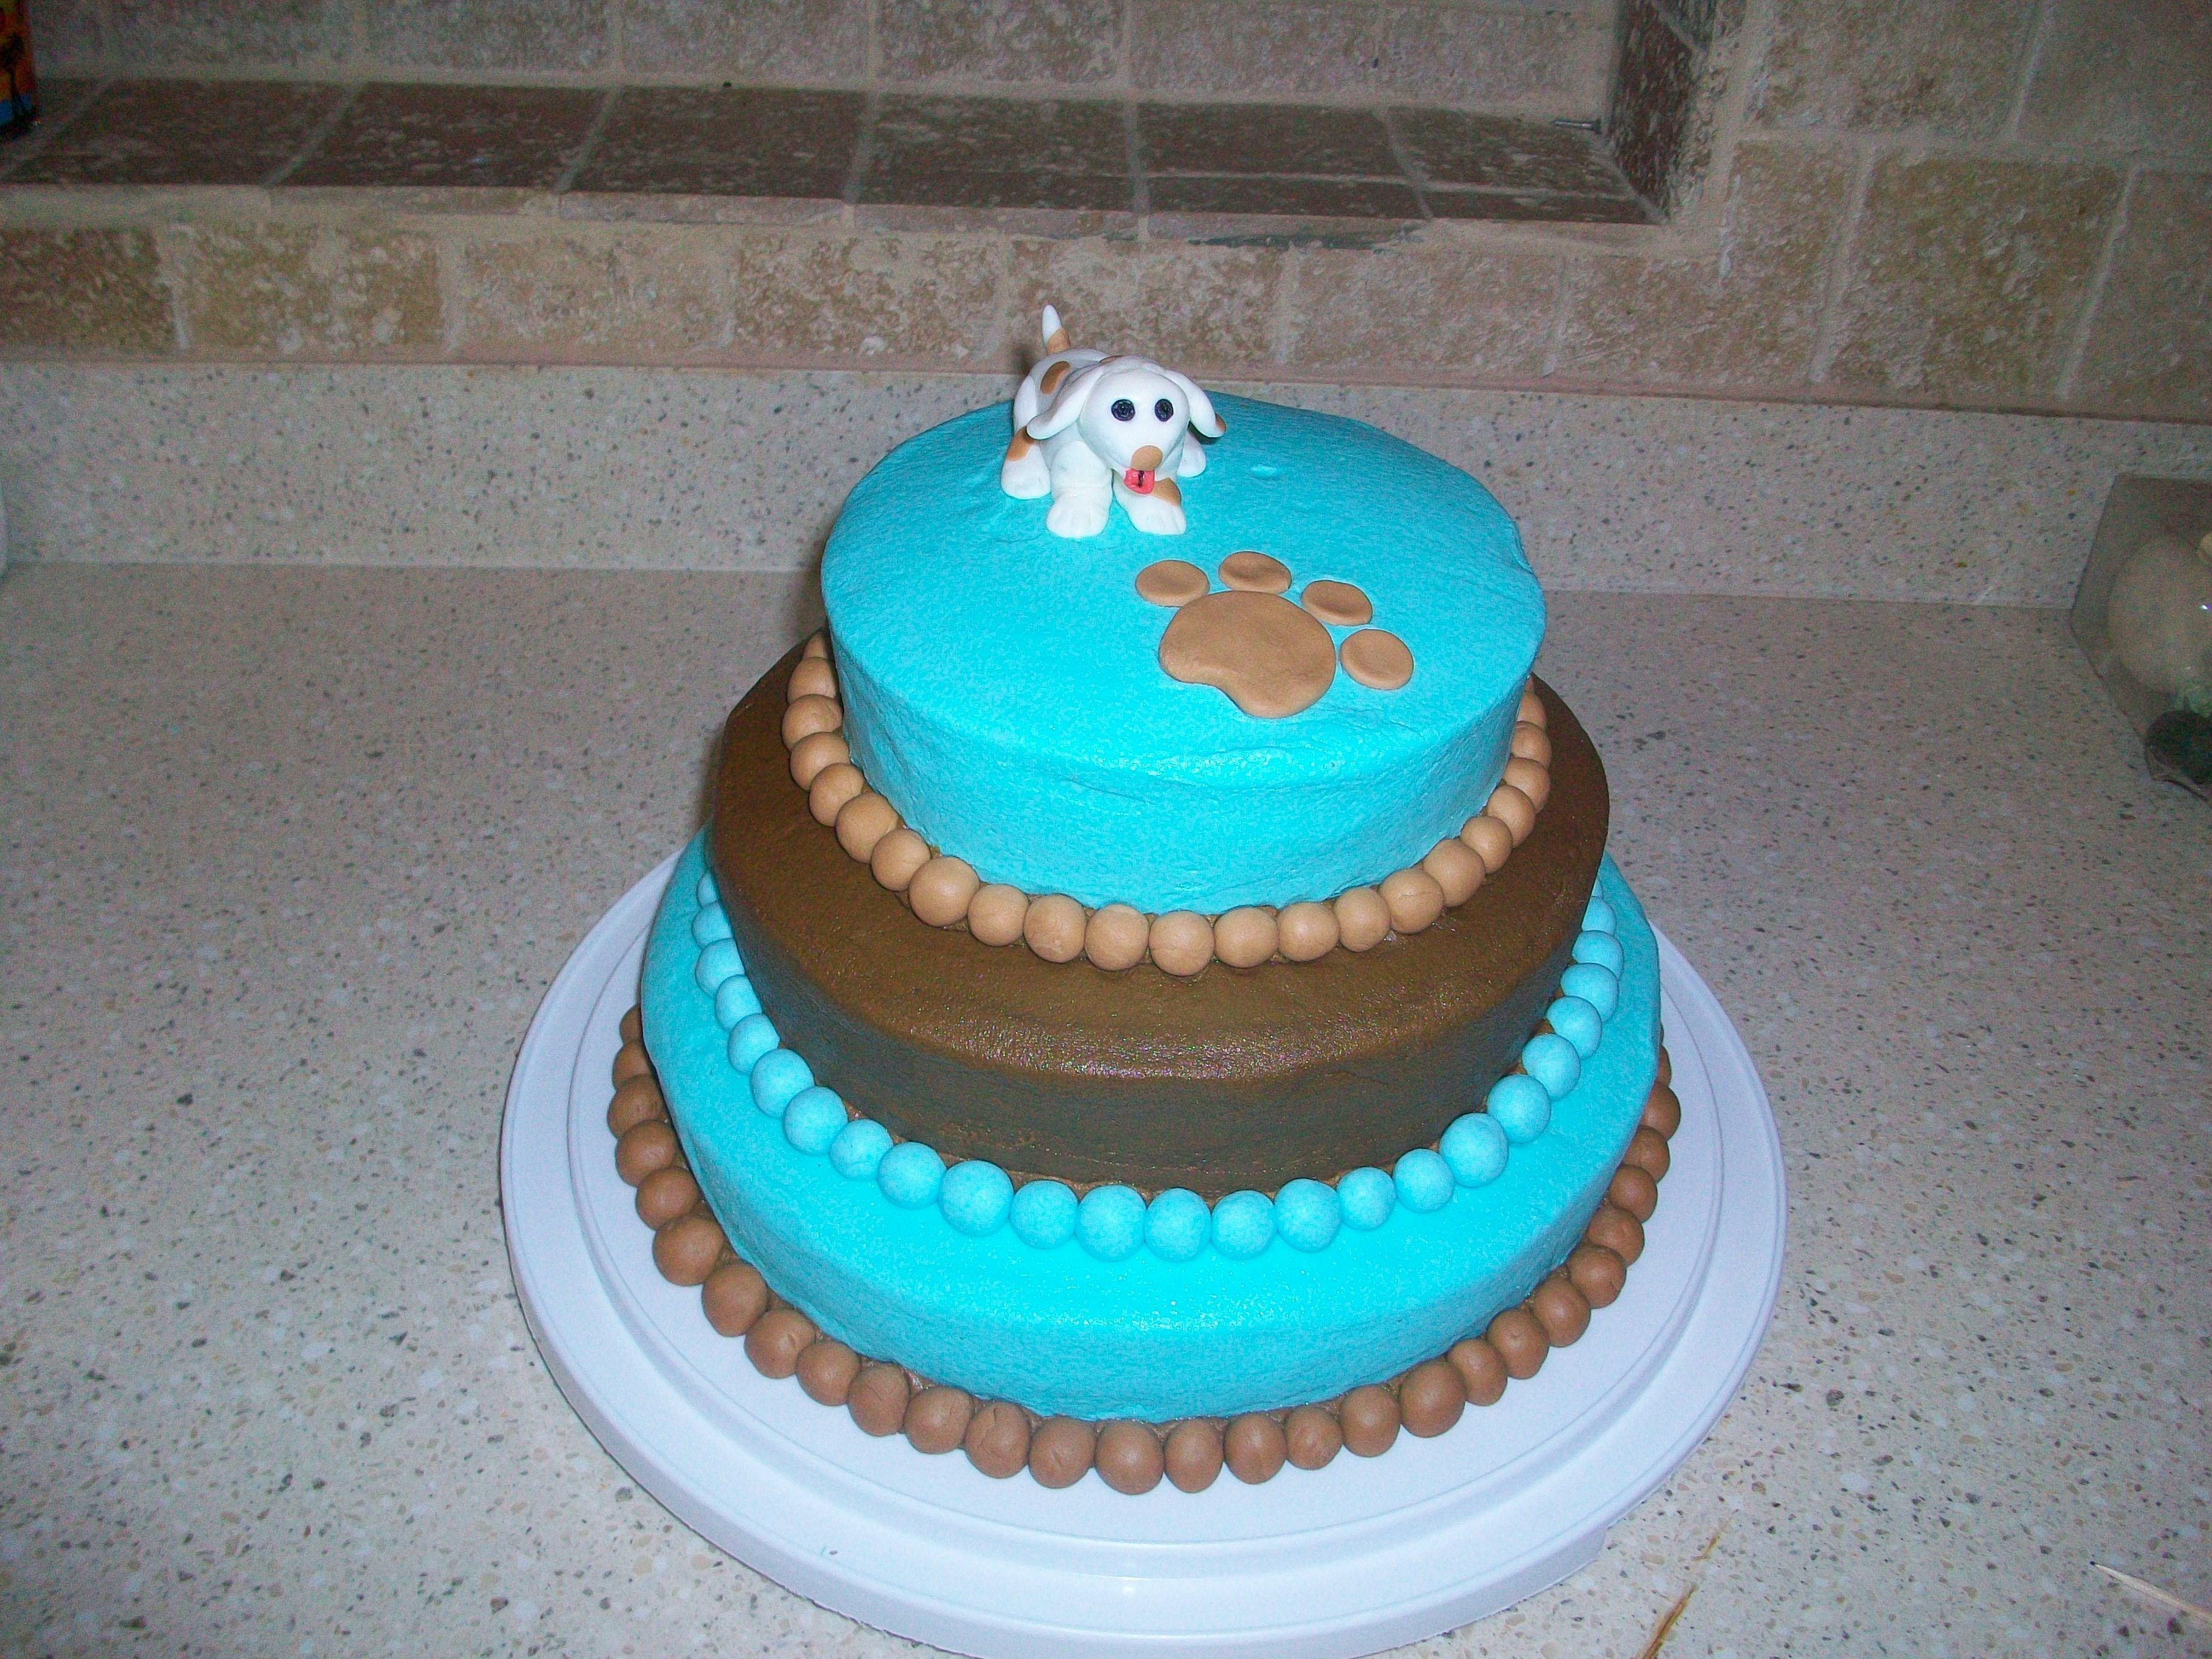 Puppy Theme For Baby Shower This was my first attempt at stacking a cake and making a figure out of fondant! :)